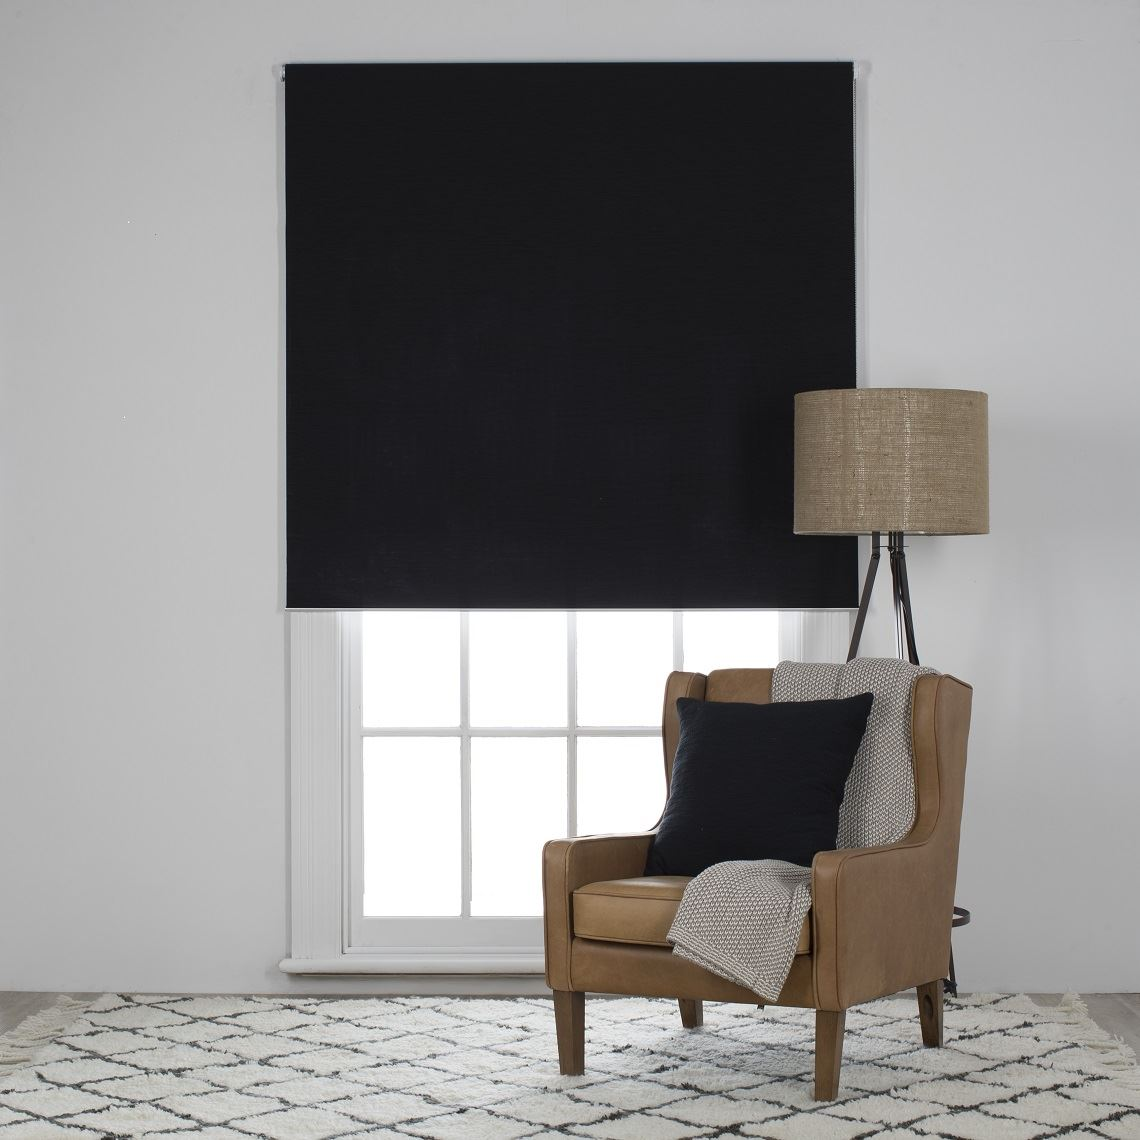 Ashcroft Blockout Roller Blind Size W 150cm x D 3cm x H 210cm in Black 100% Polyester Freedom by Freedom, a Curtains for sale on Style Sourcebook